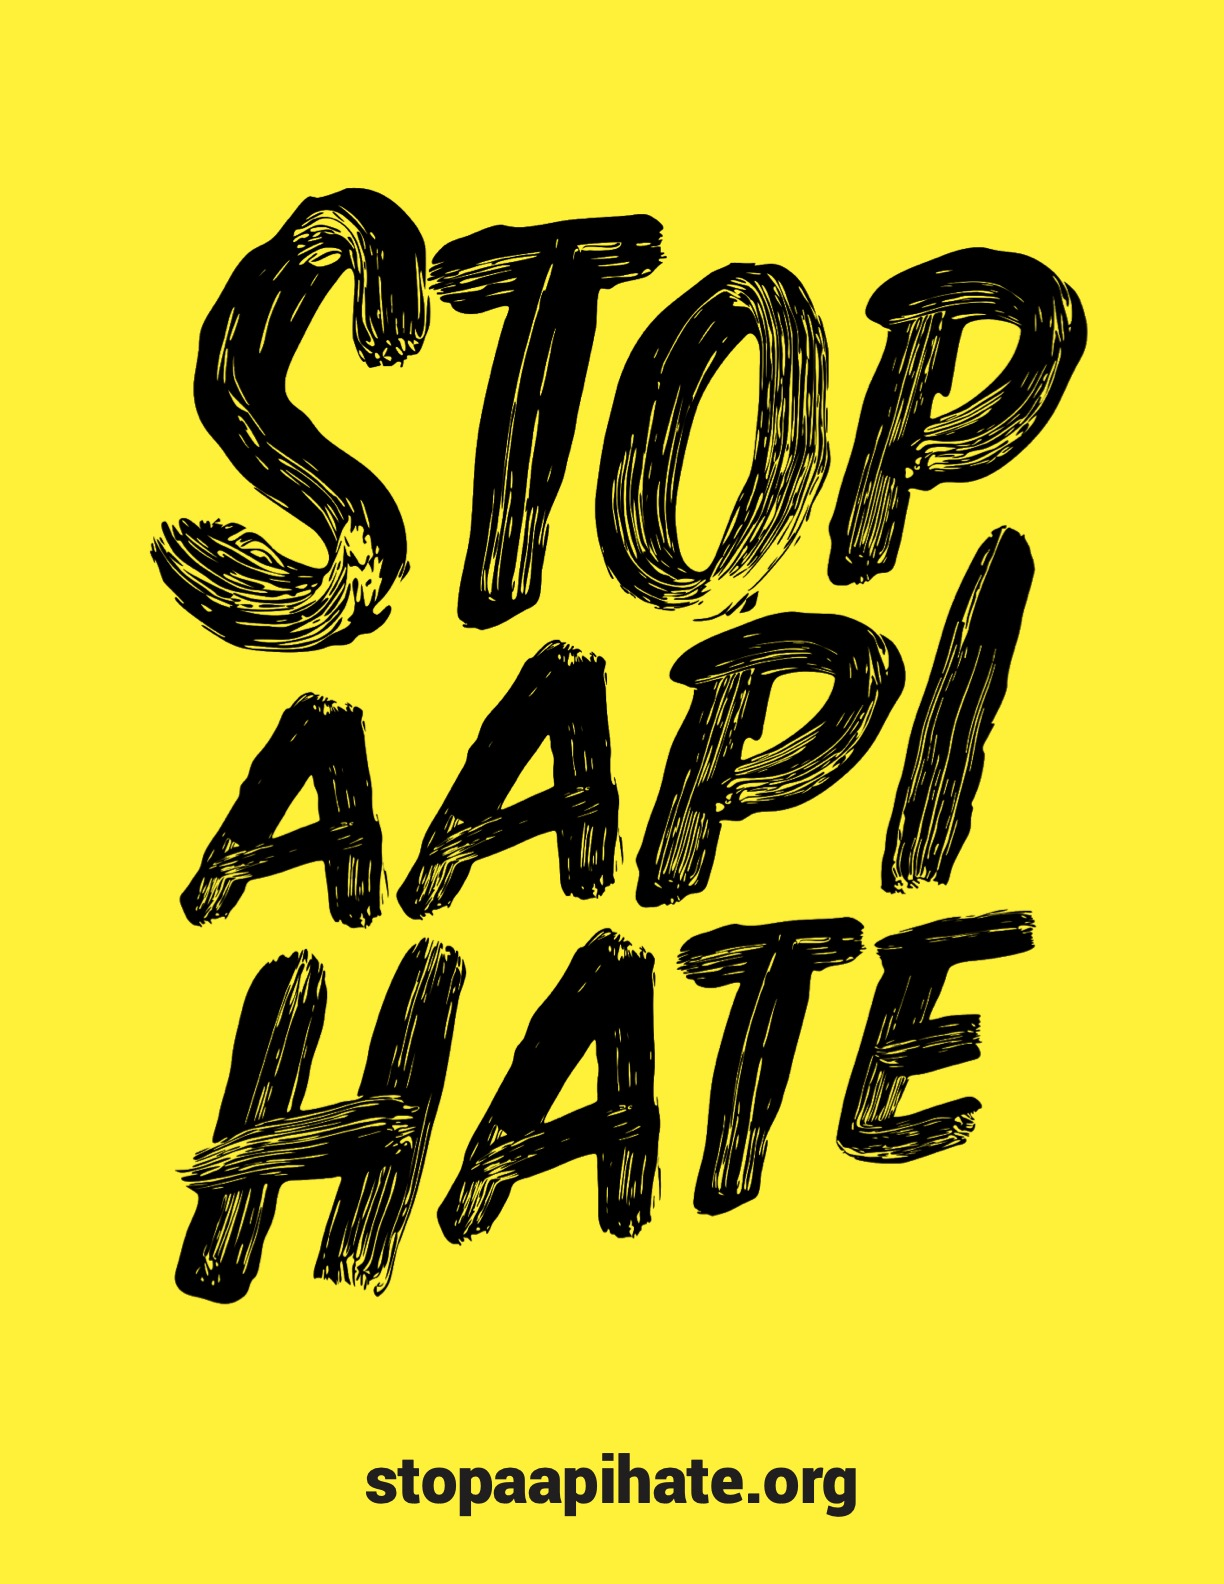 Image from https://stopaapihate.org/resources/